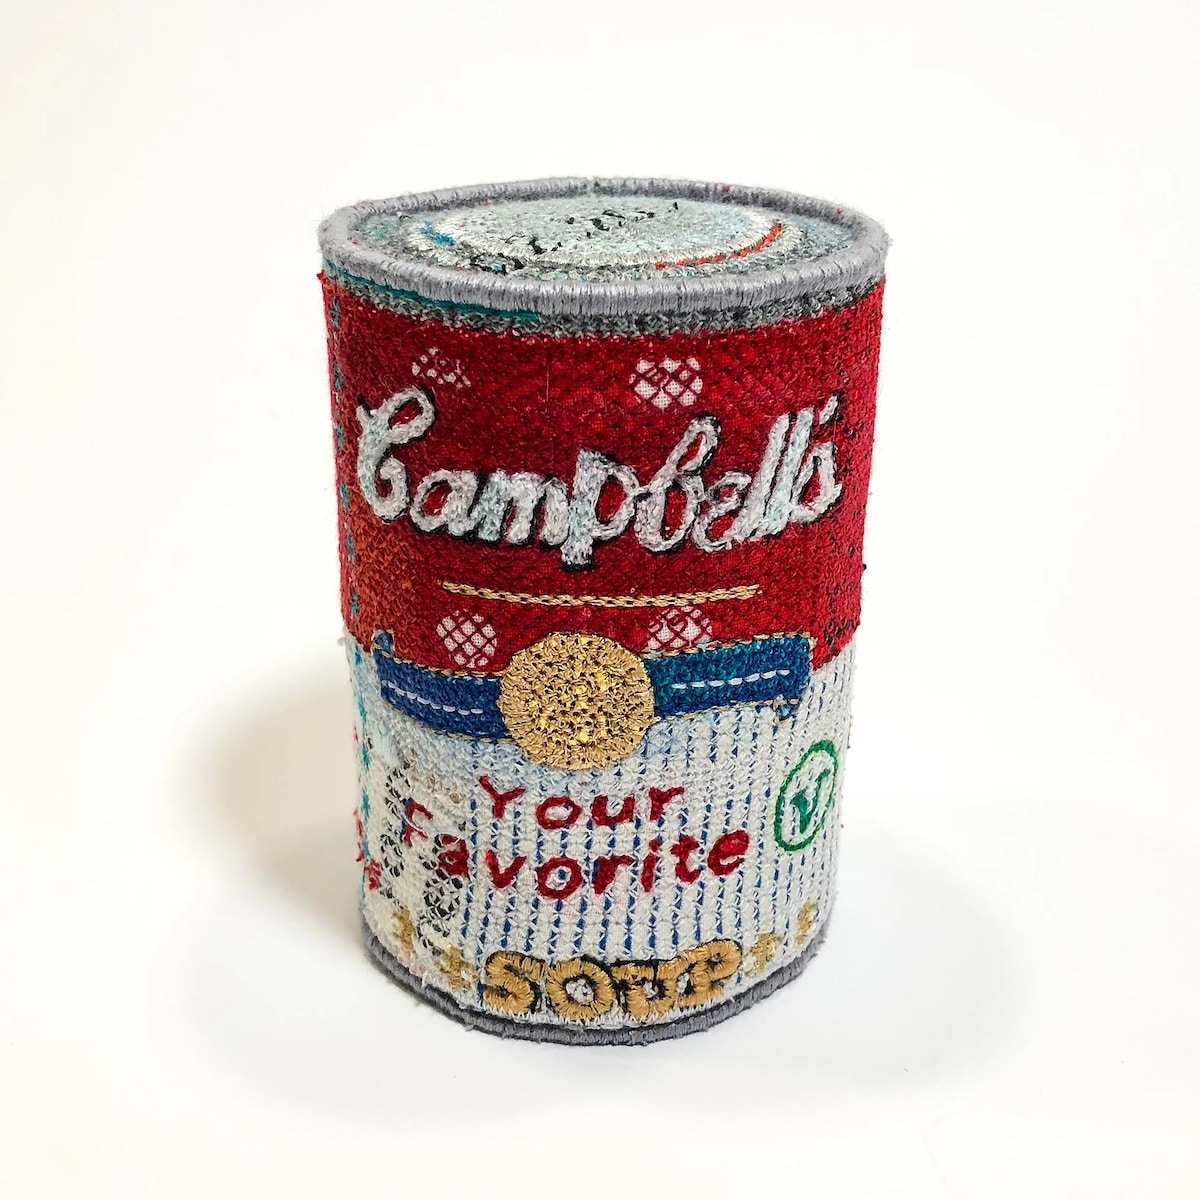 Embroidered Felt Campbell's Soup Can